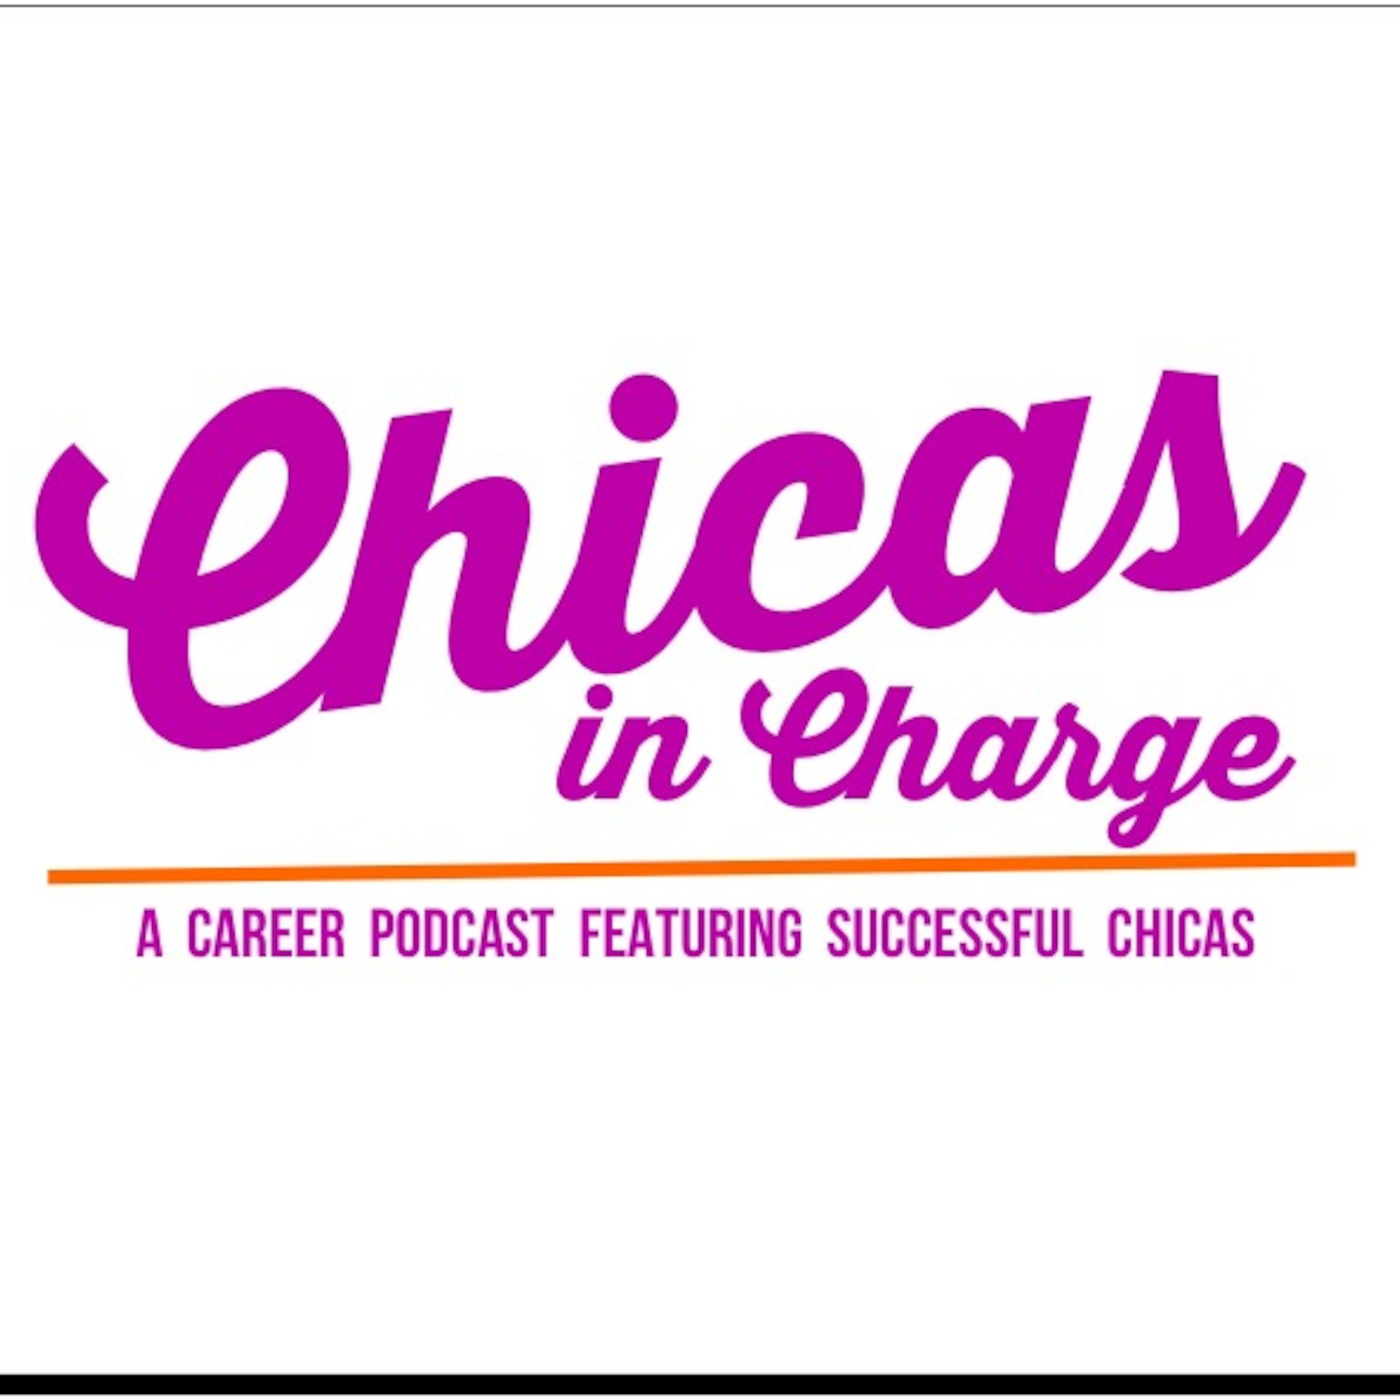 Chicas In Charge Podcast